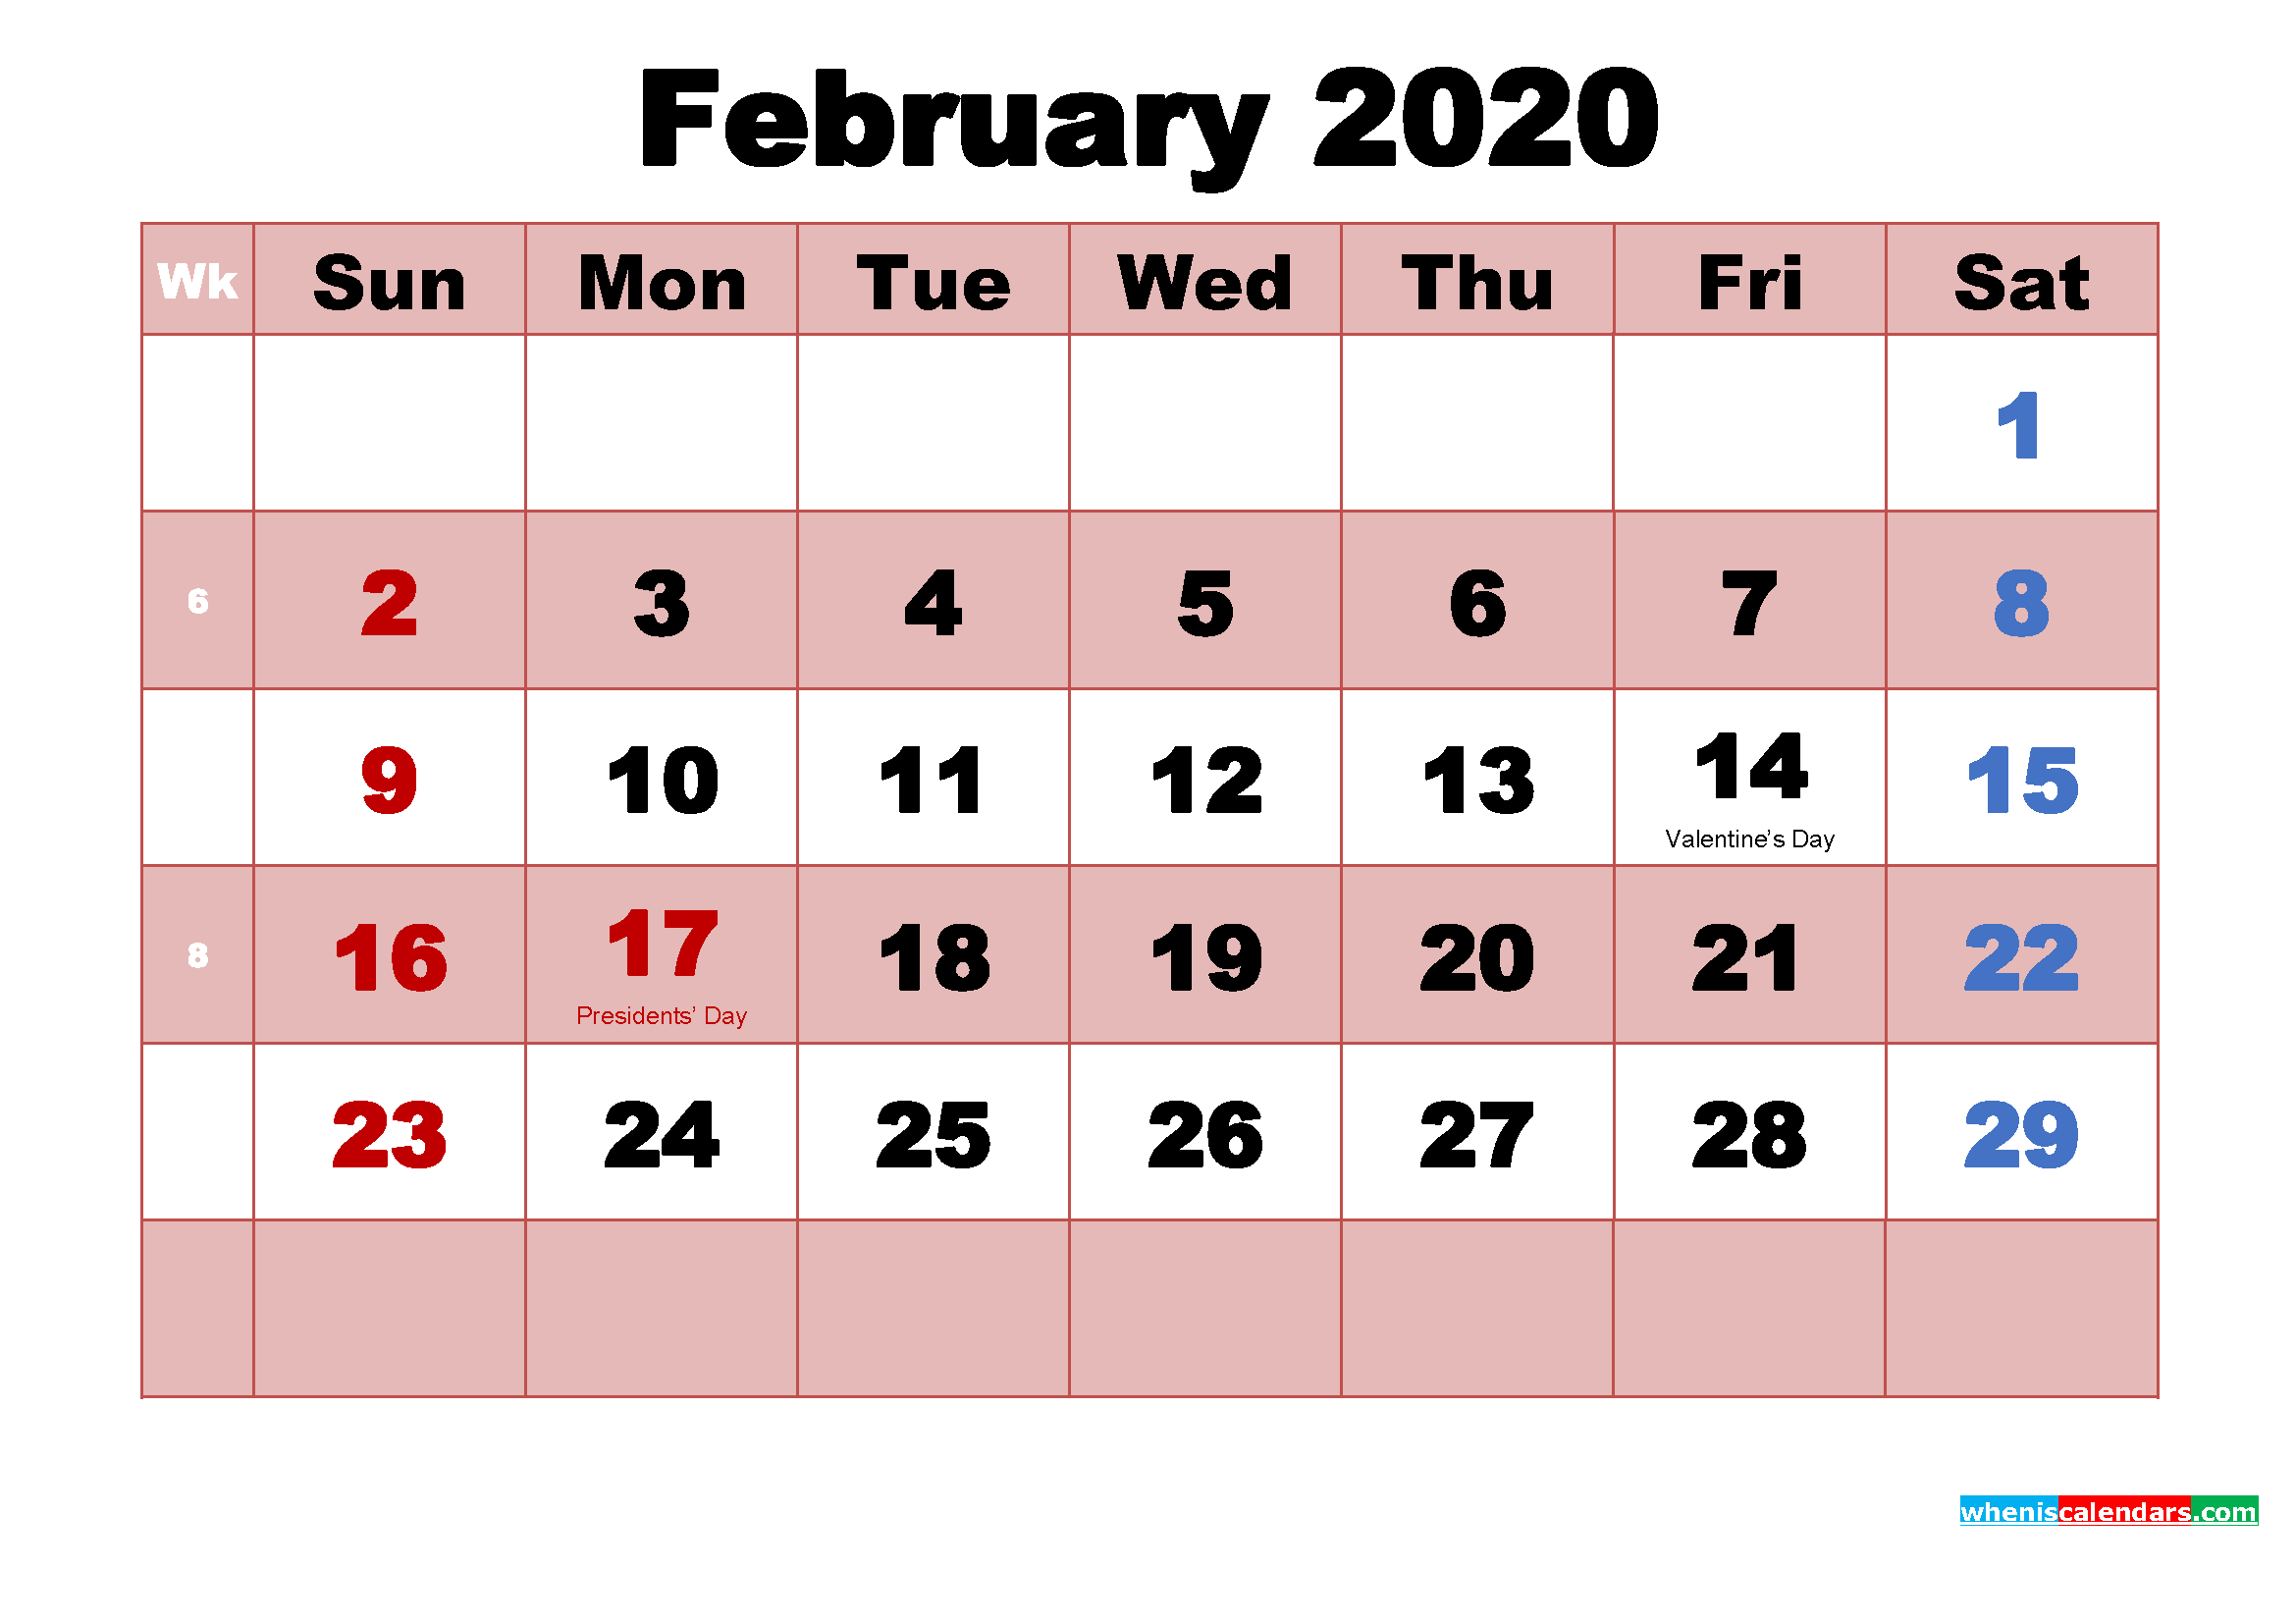 February 2020 Calendar with Holidays Wallpapers